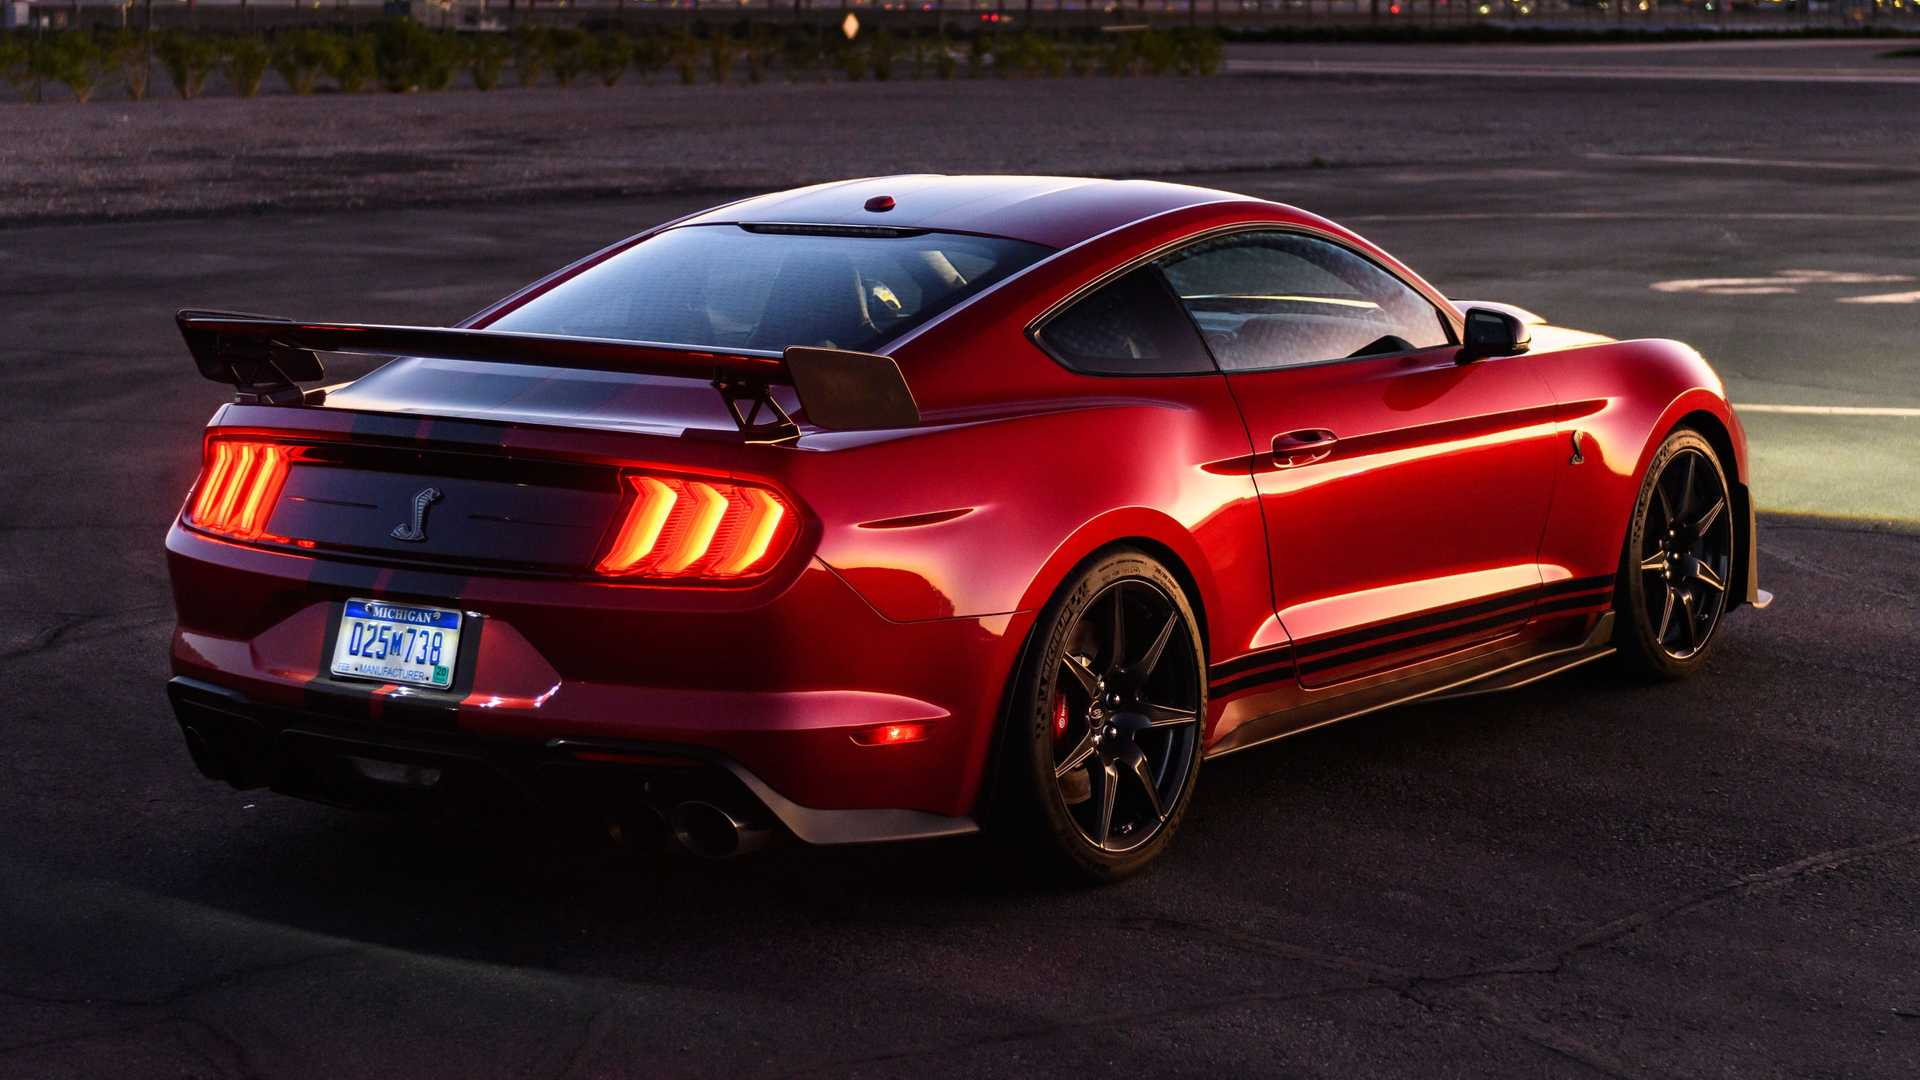 Enter To Win This 2020 Ford Shelby GT500 And Get 50% More ...